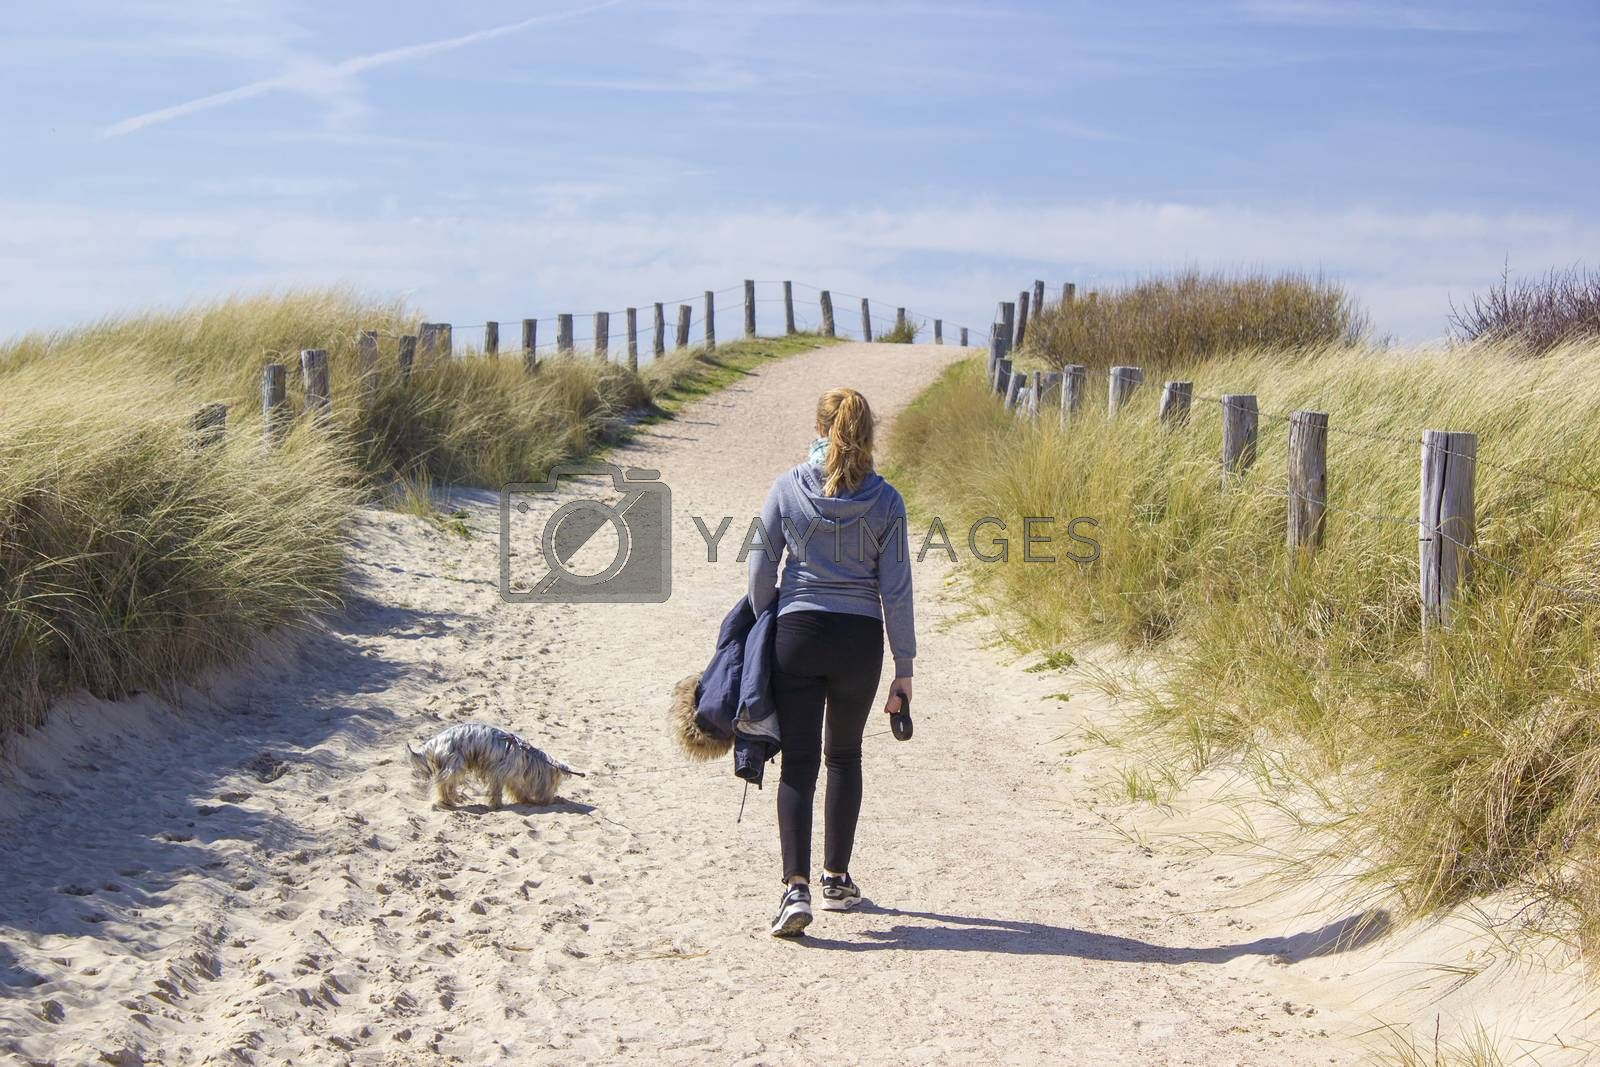 Walking with the dog in the dunes, Zoutelande, Netherlands by miradrozdowski